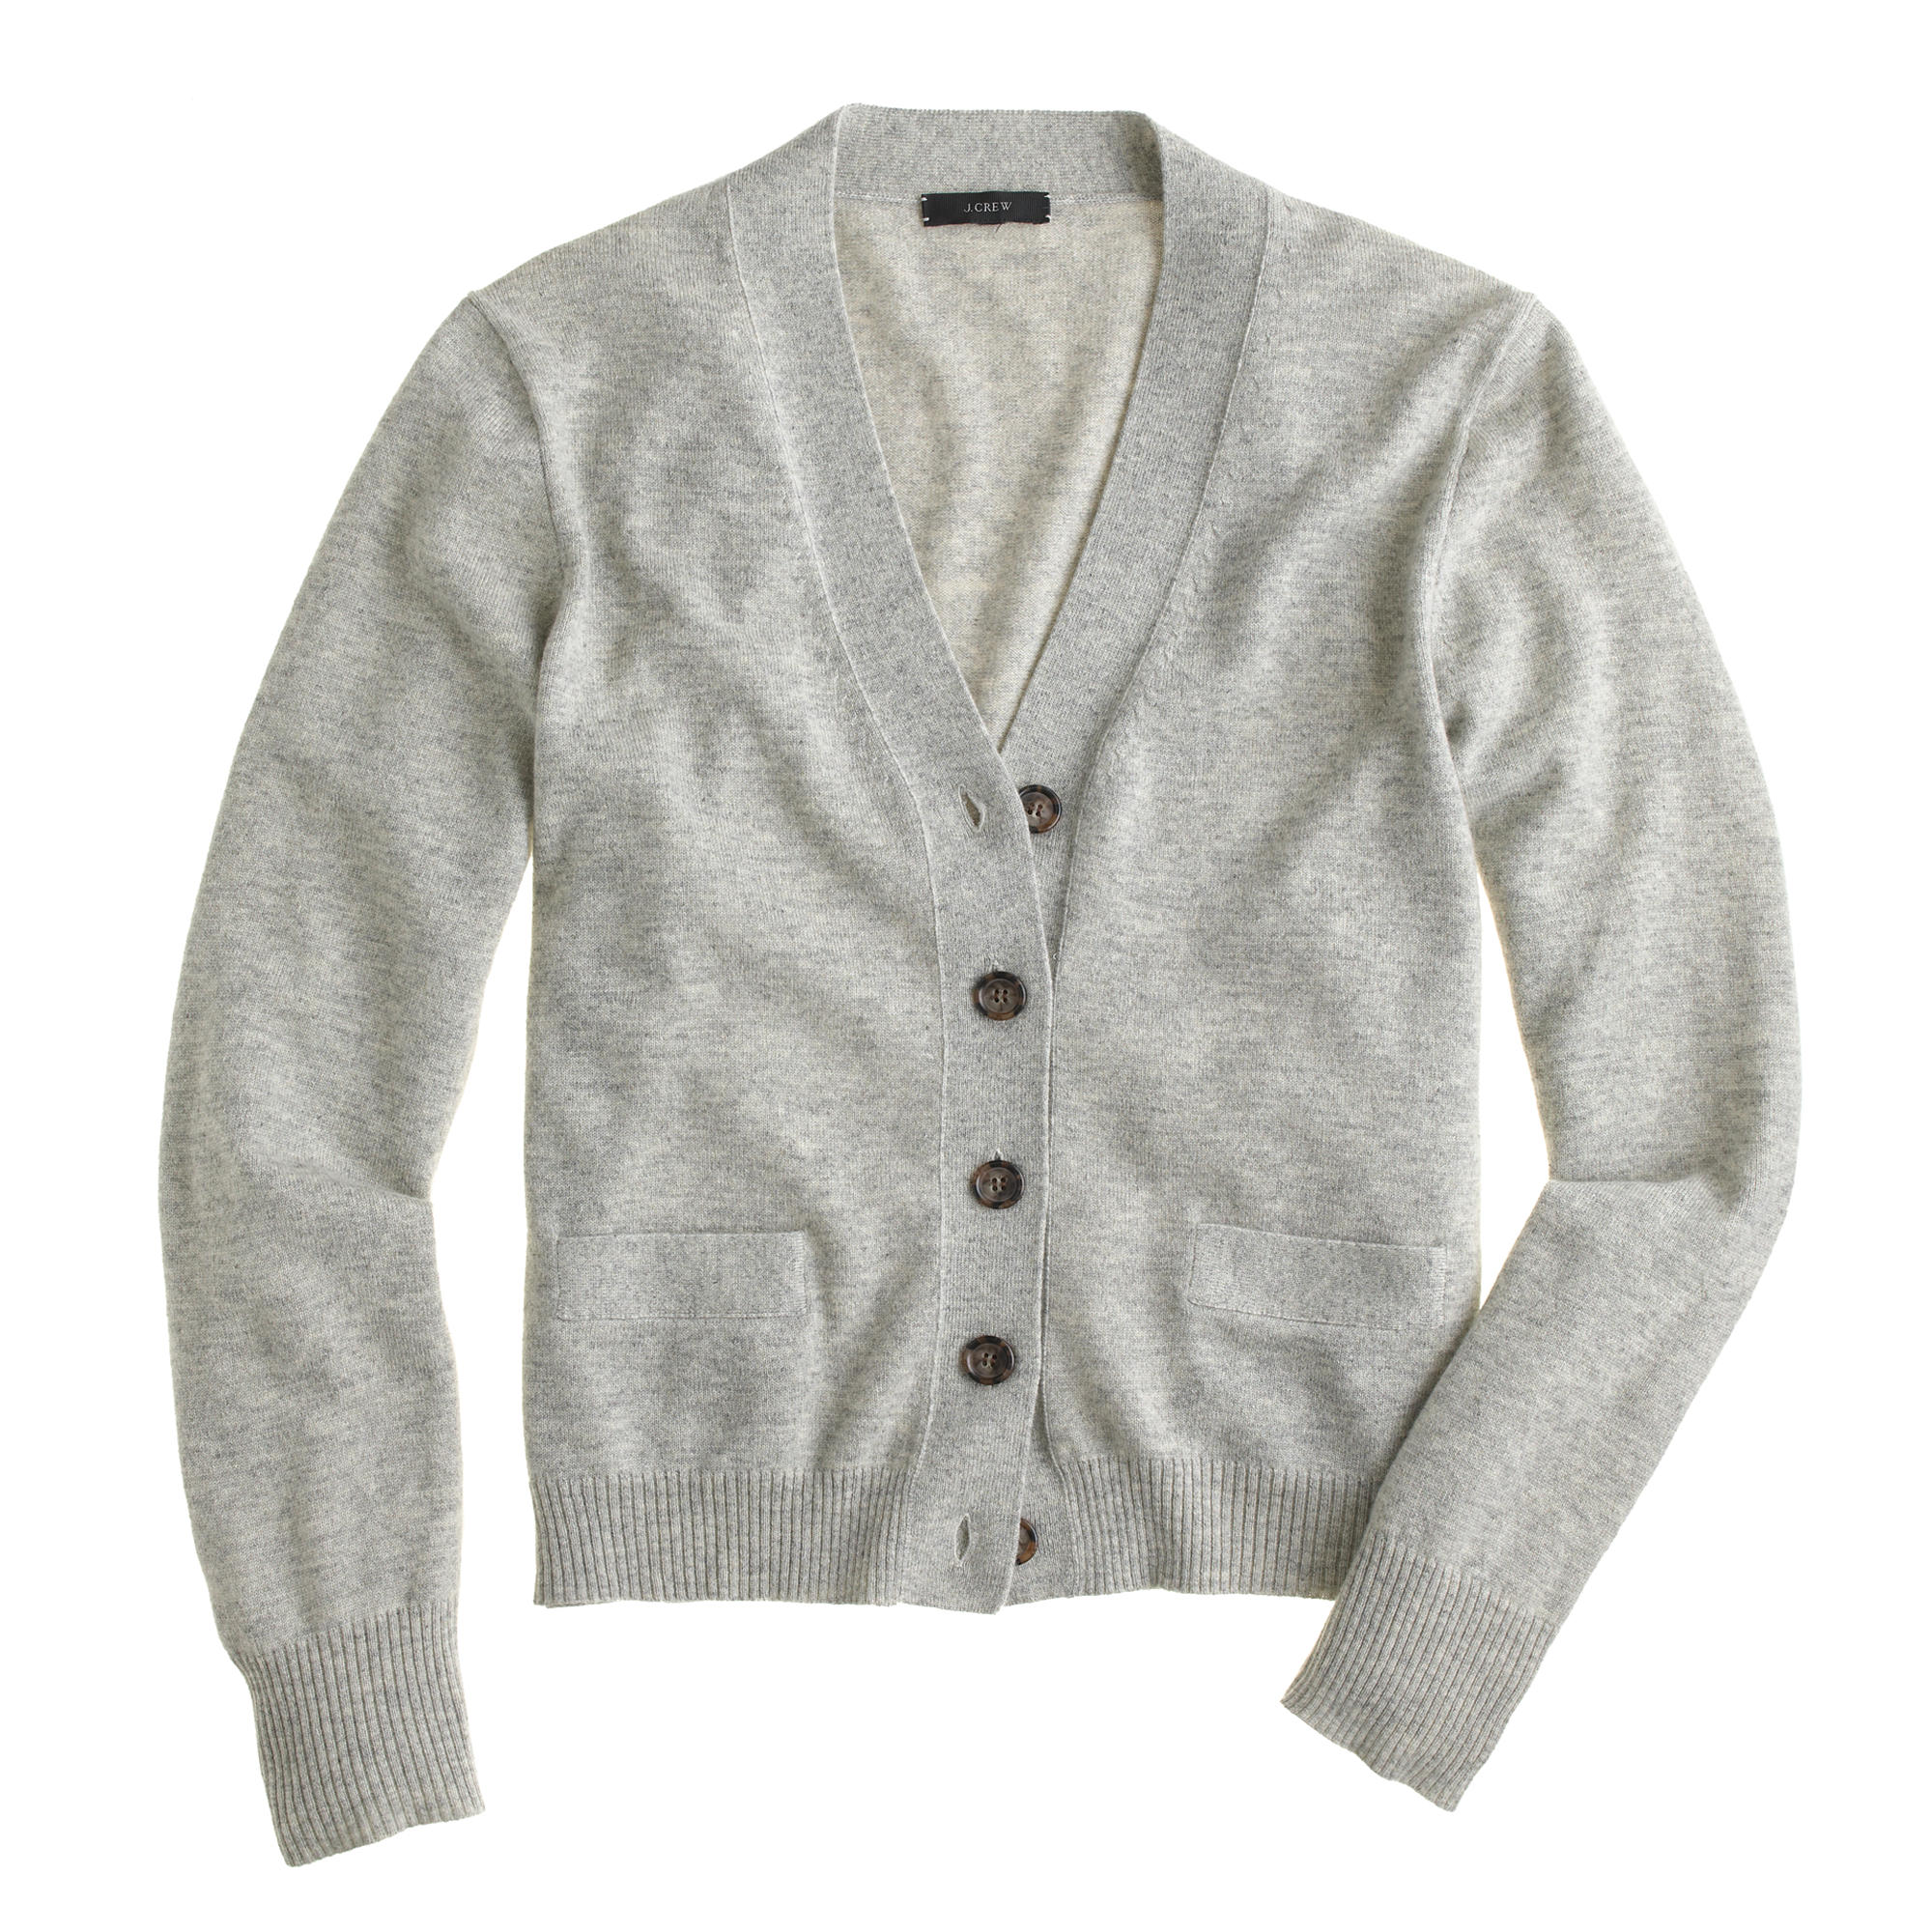 Petite Wool Cardigan Sweater - Cardigan With Buttons